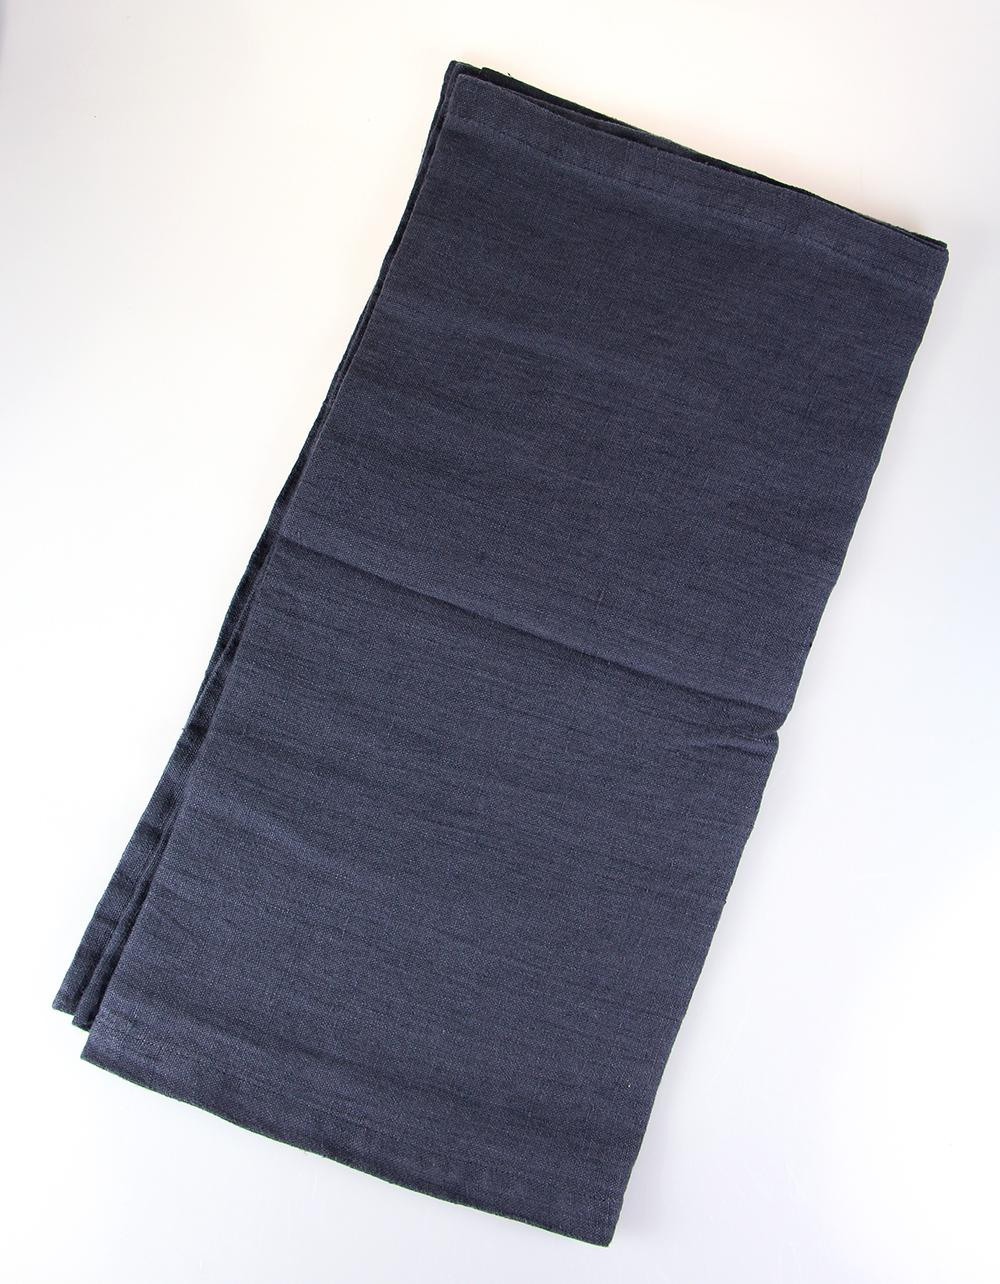 The Essential Ingredient Pure Linen Table Runner - Charcoal 45cm x 180cm